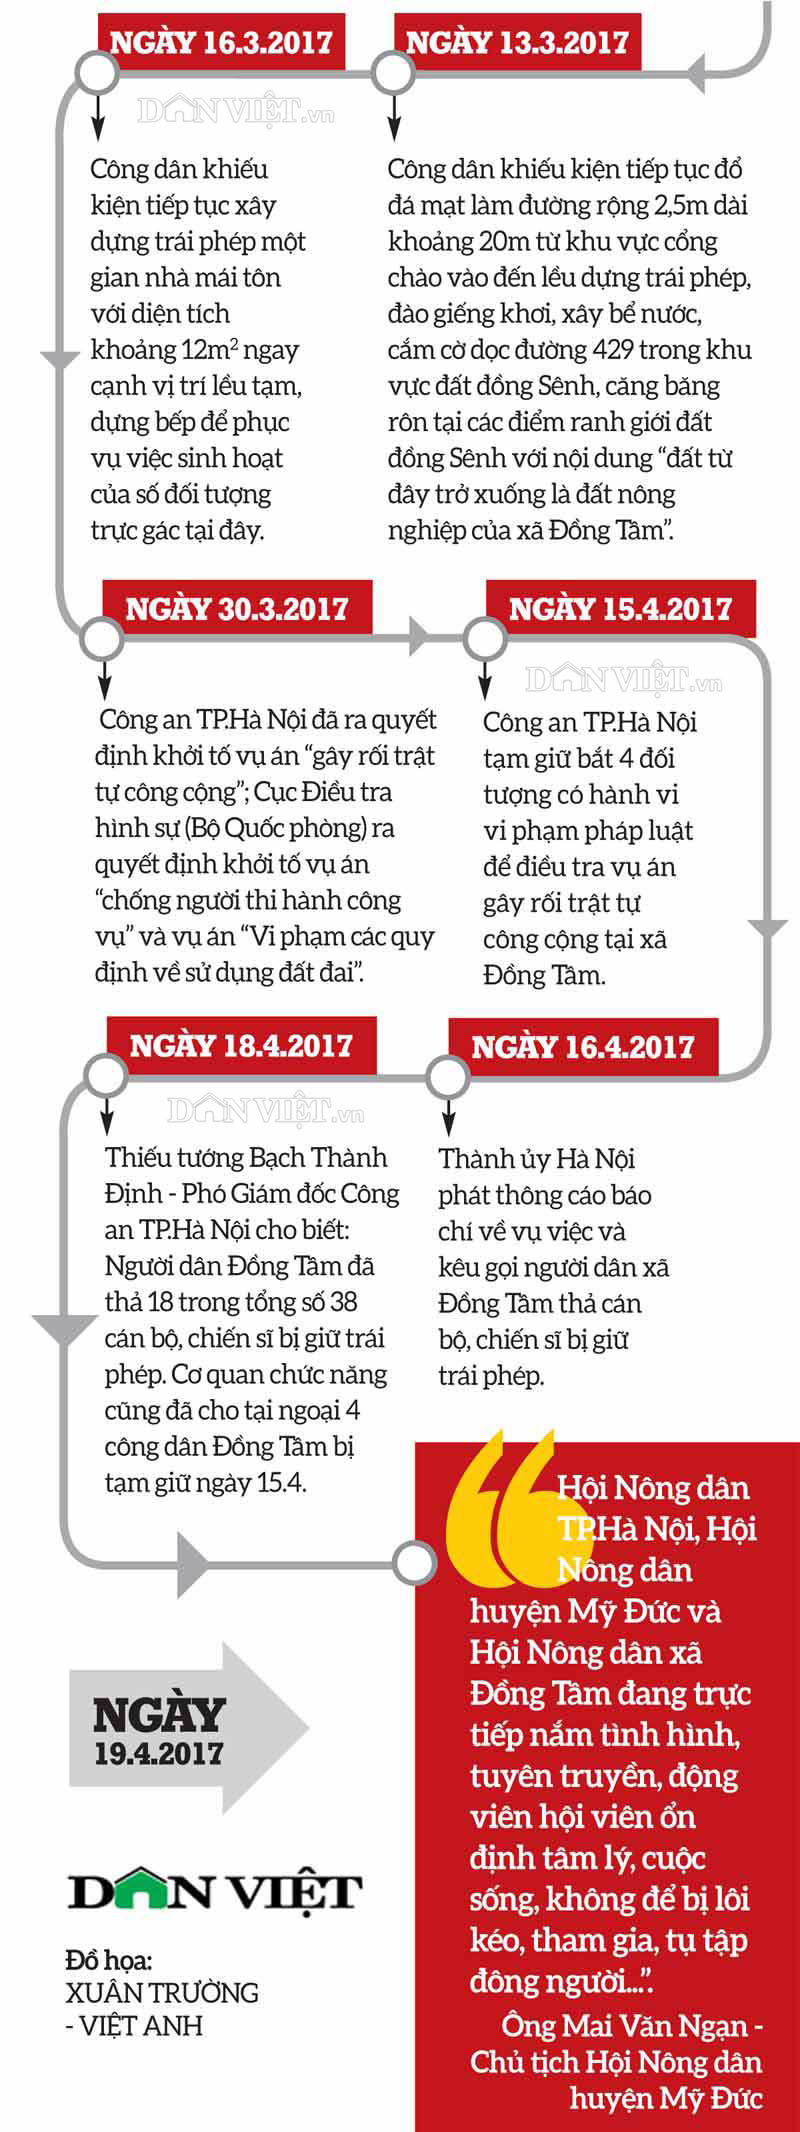 infographic: toan canh dien bien vu viec tai dong tam - my duc hinh anh 3